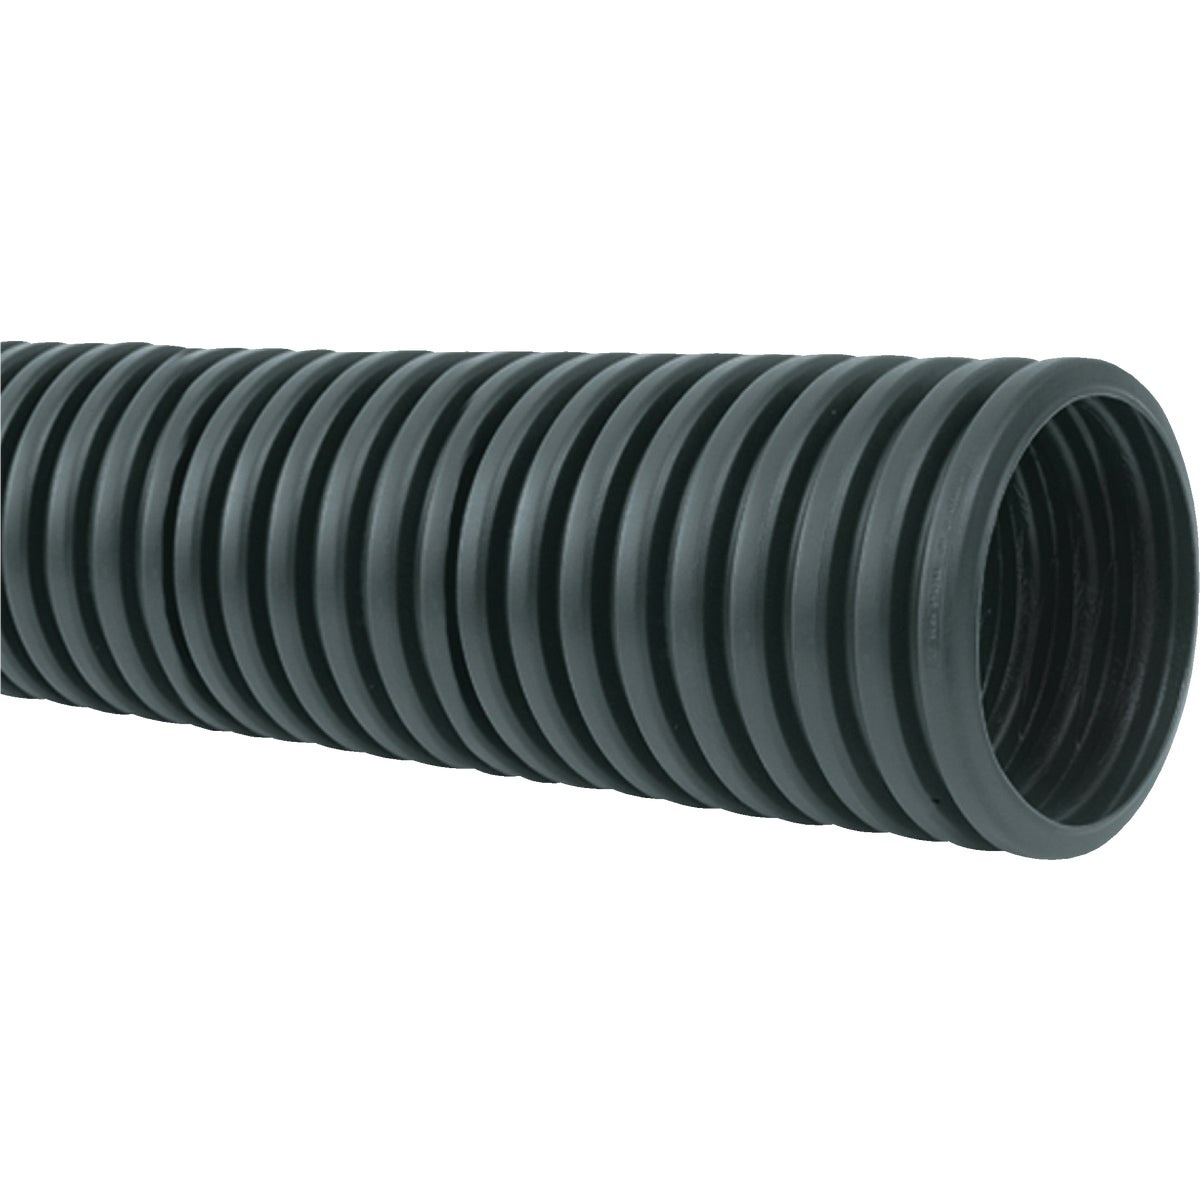 "3""X10' SOLID PIPE - 03540010 by Advanced Drainage Sy"